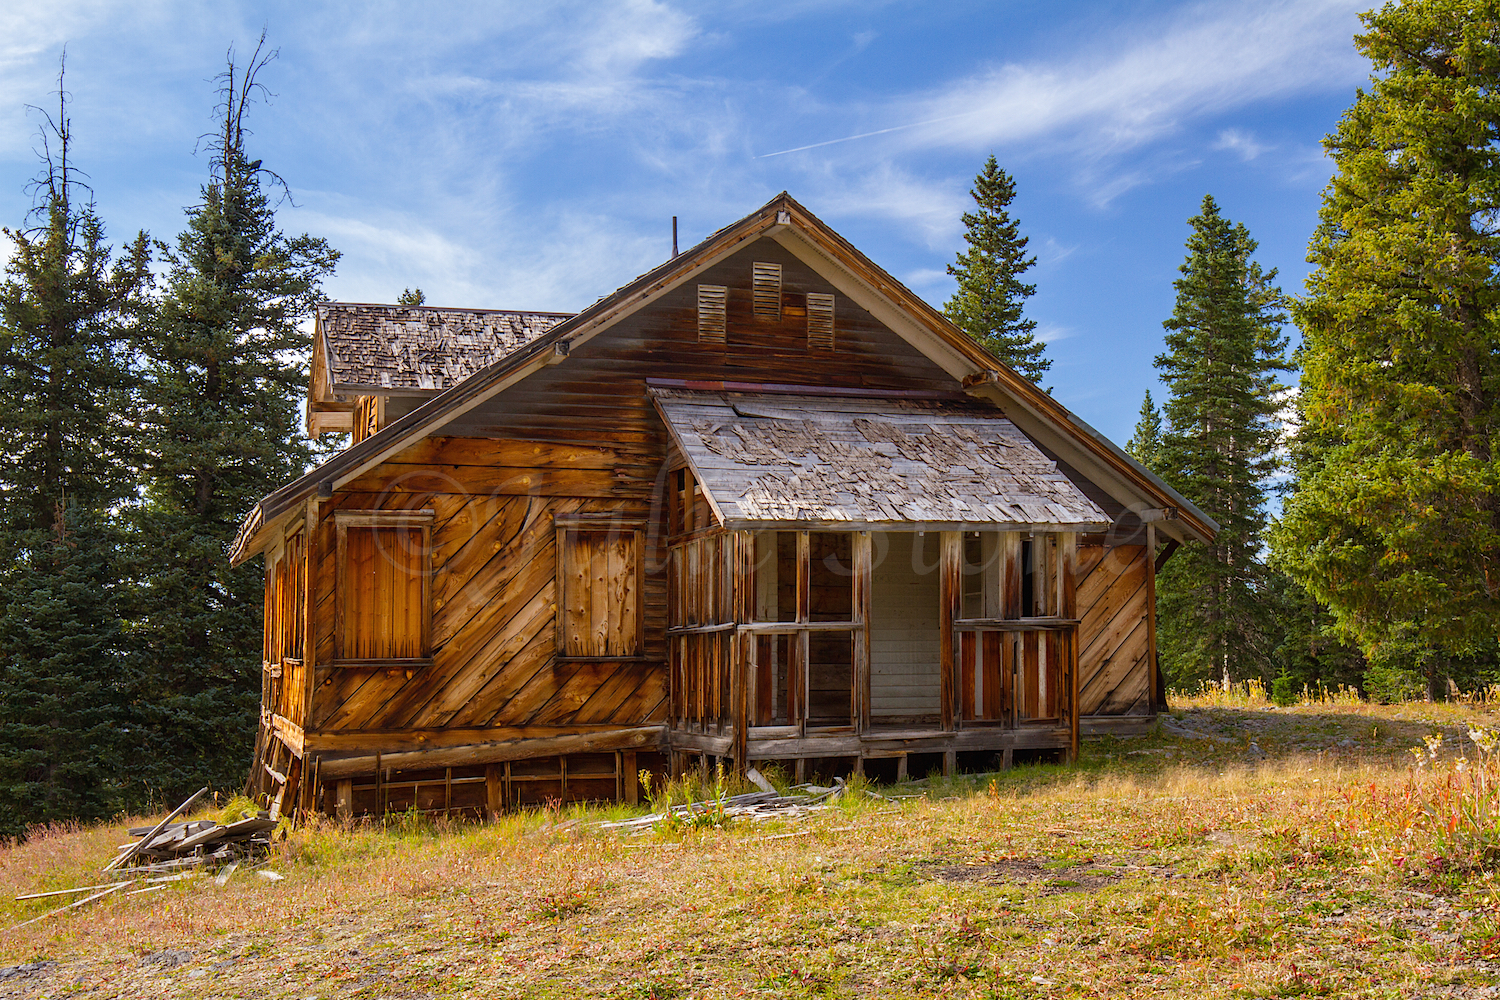 Alta Ghost Town, Image 3398